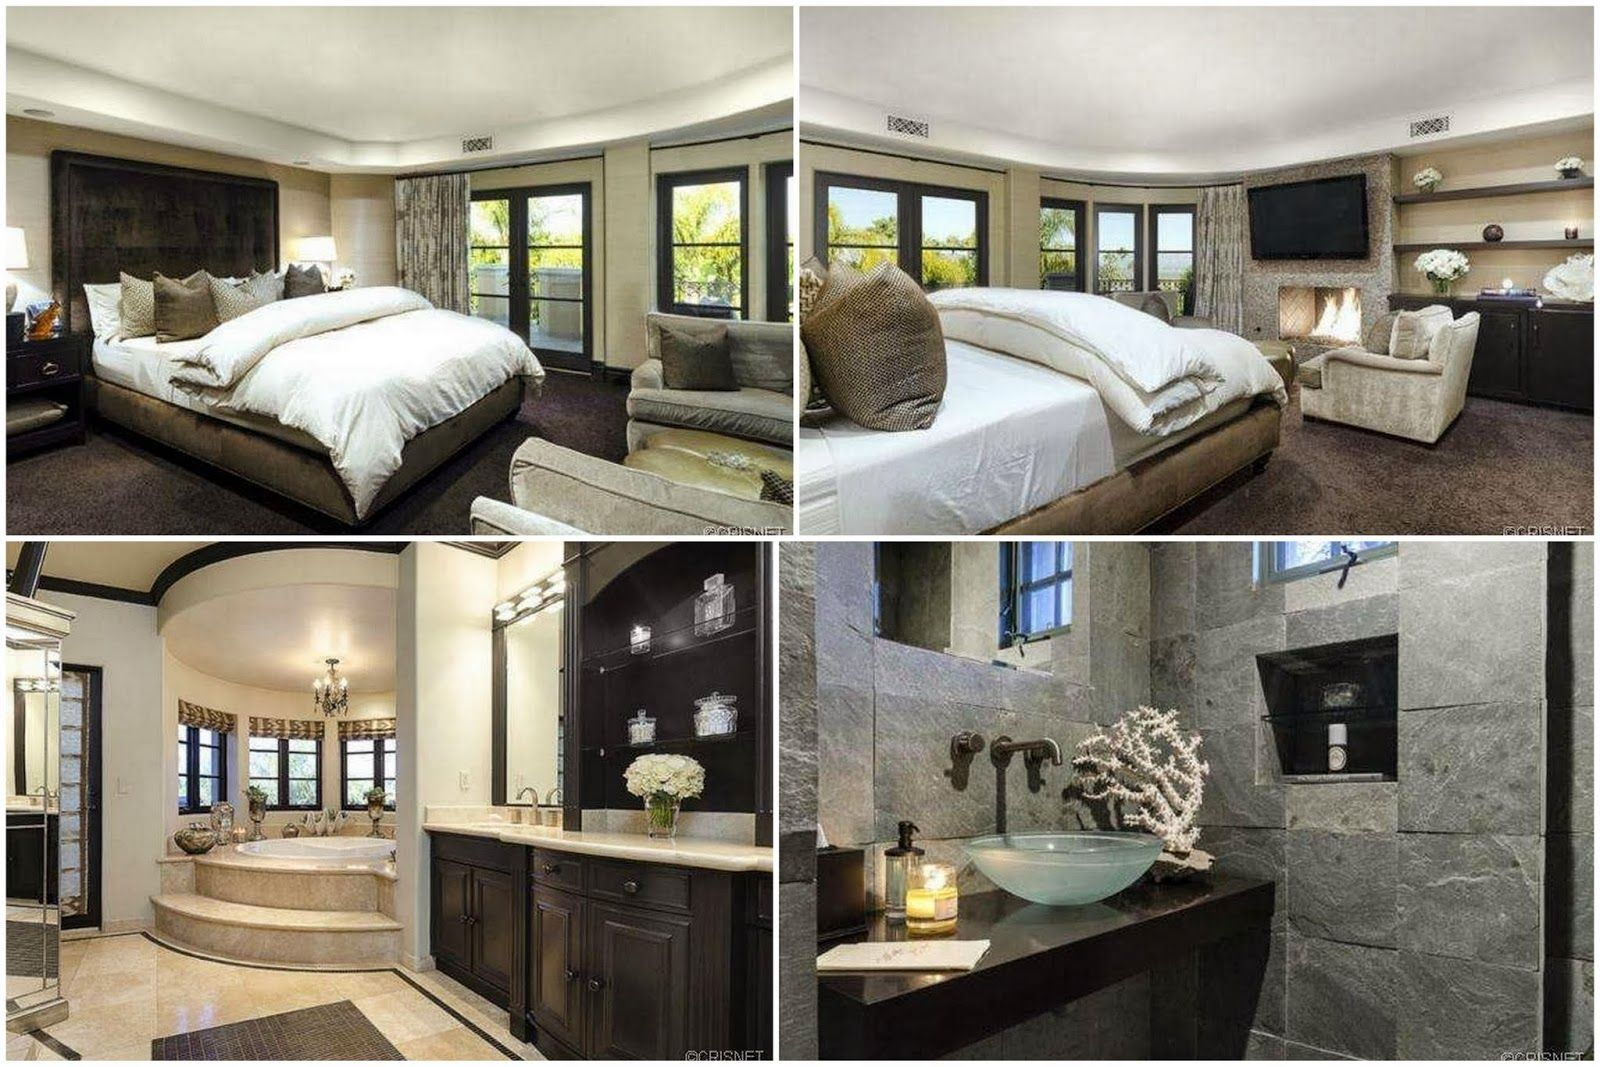 Khloe Kardashian House Interior Design